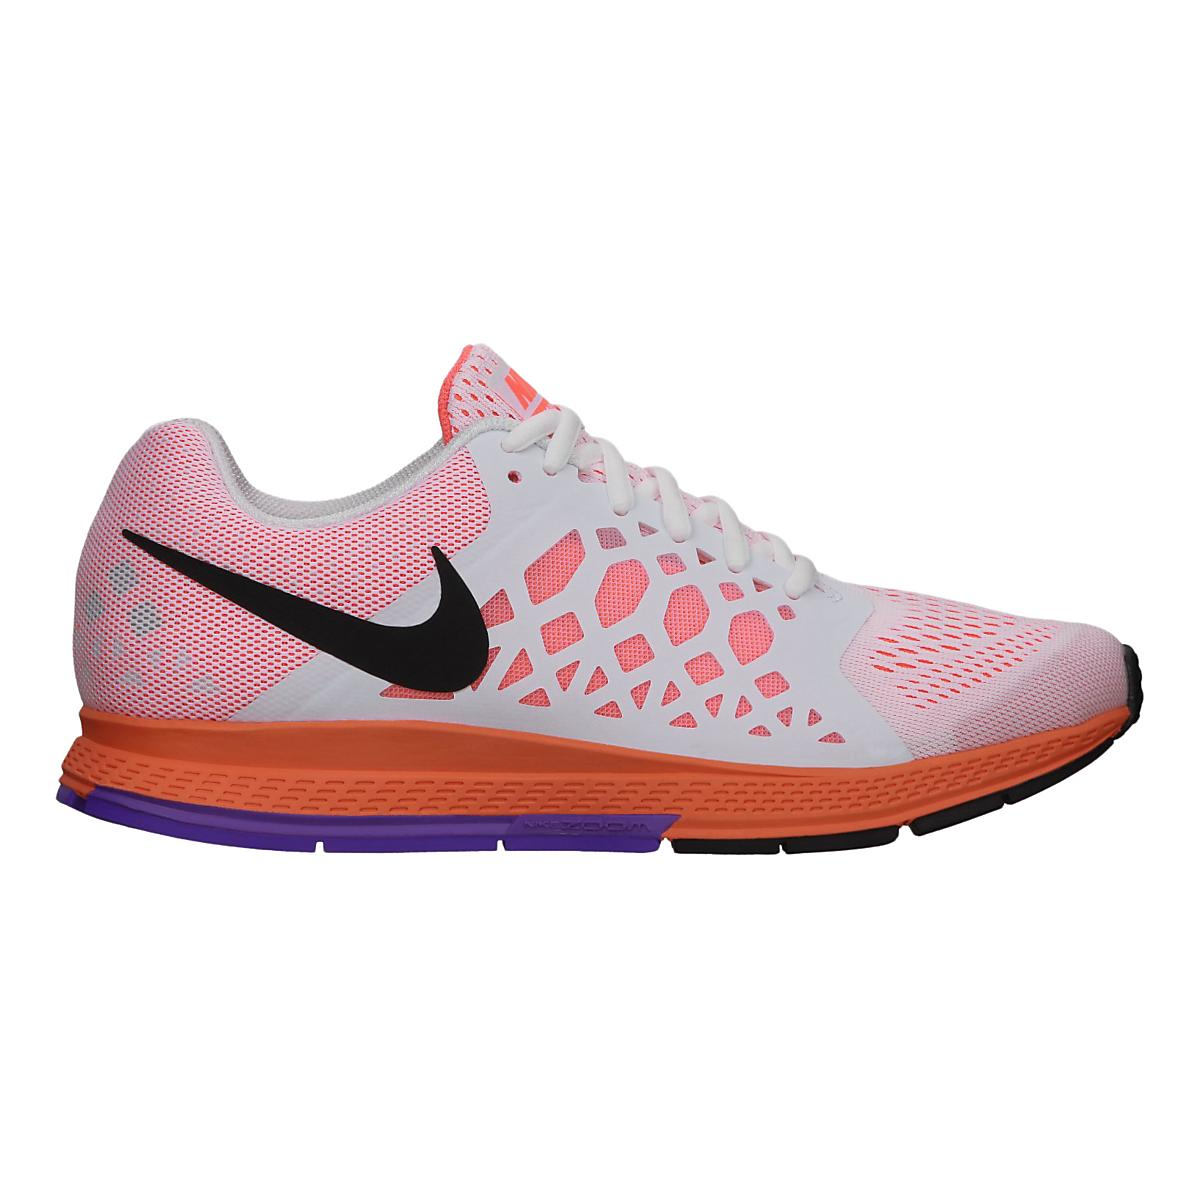 new styles 185ad 977de Womens Nike Air Zoom Pegasus 31 Running Shoe at Road Runner Sports